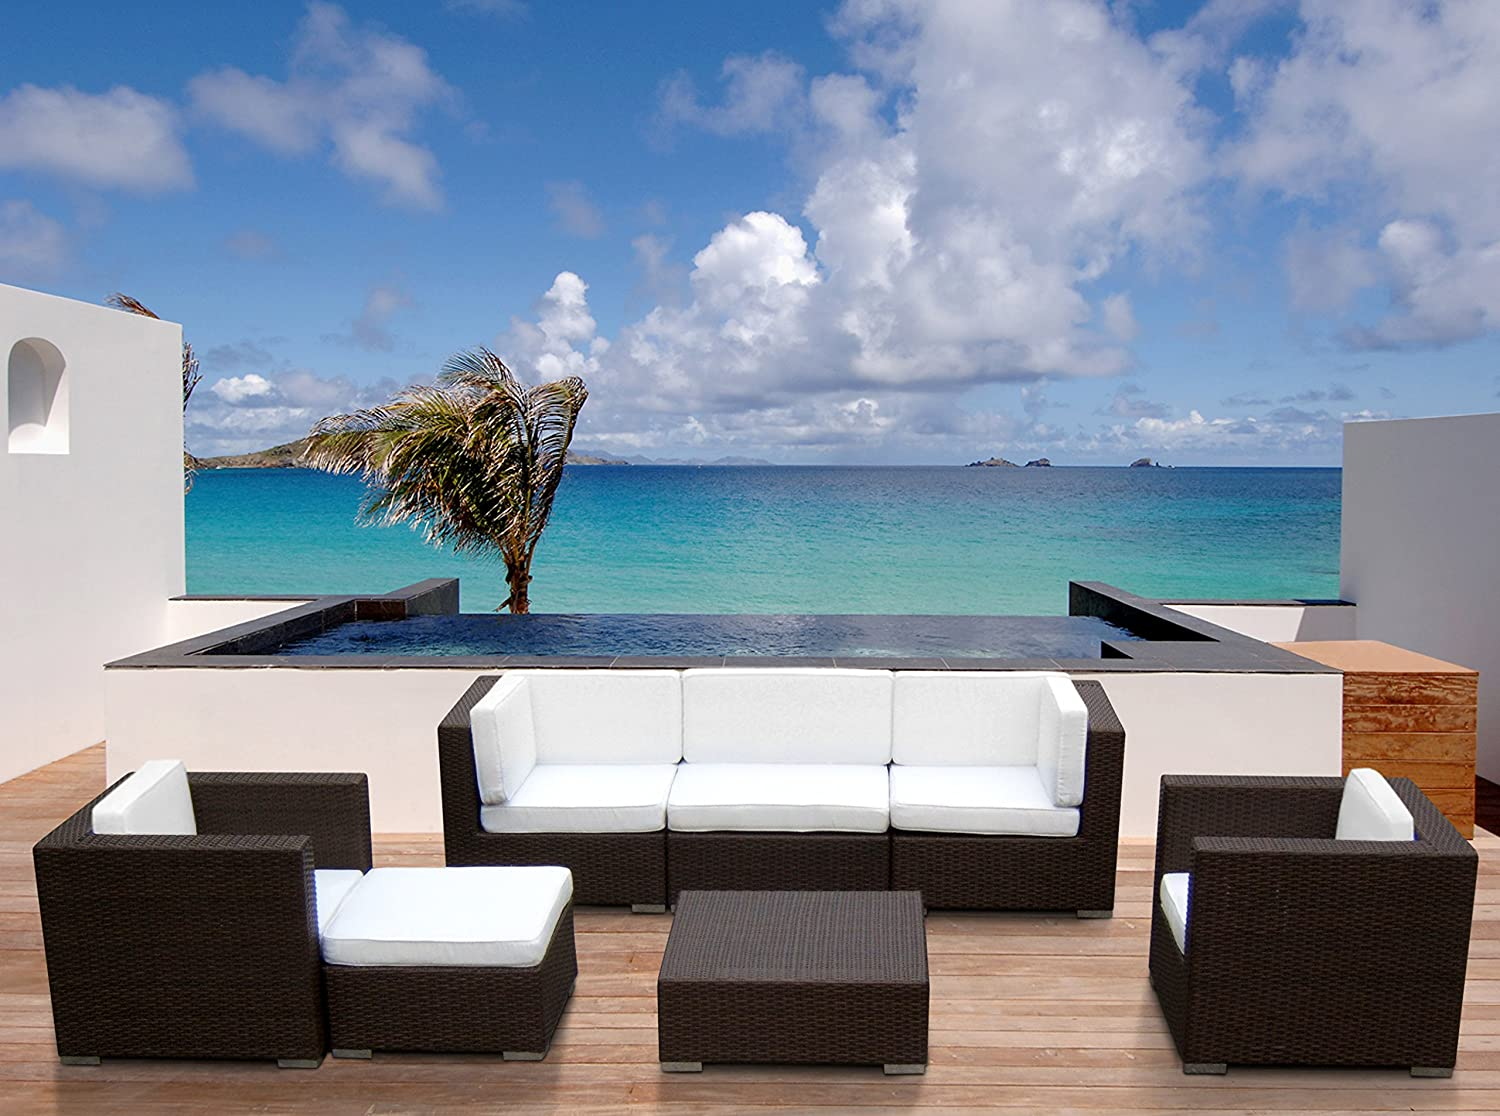 fl patio model furniture miami district outdoor design ideas home best